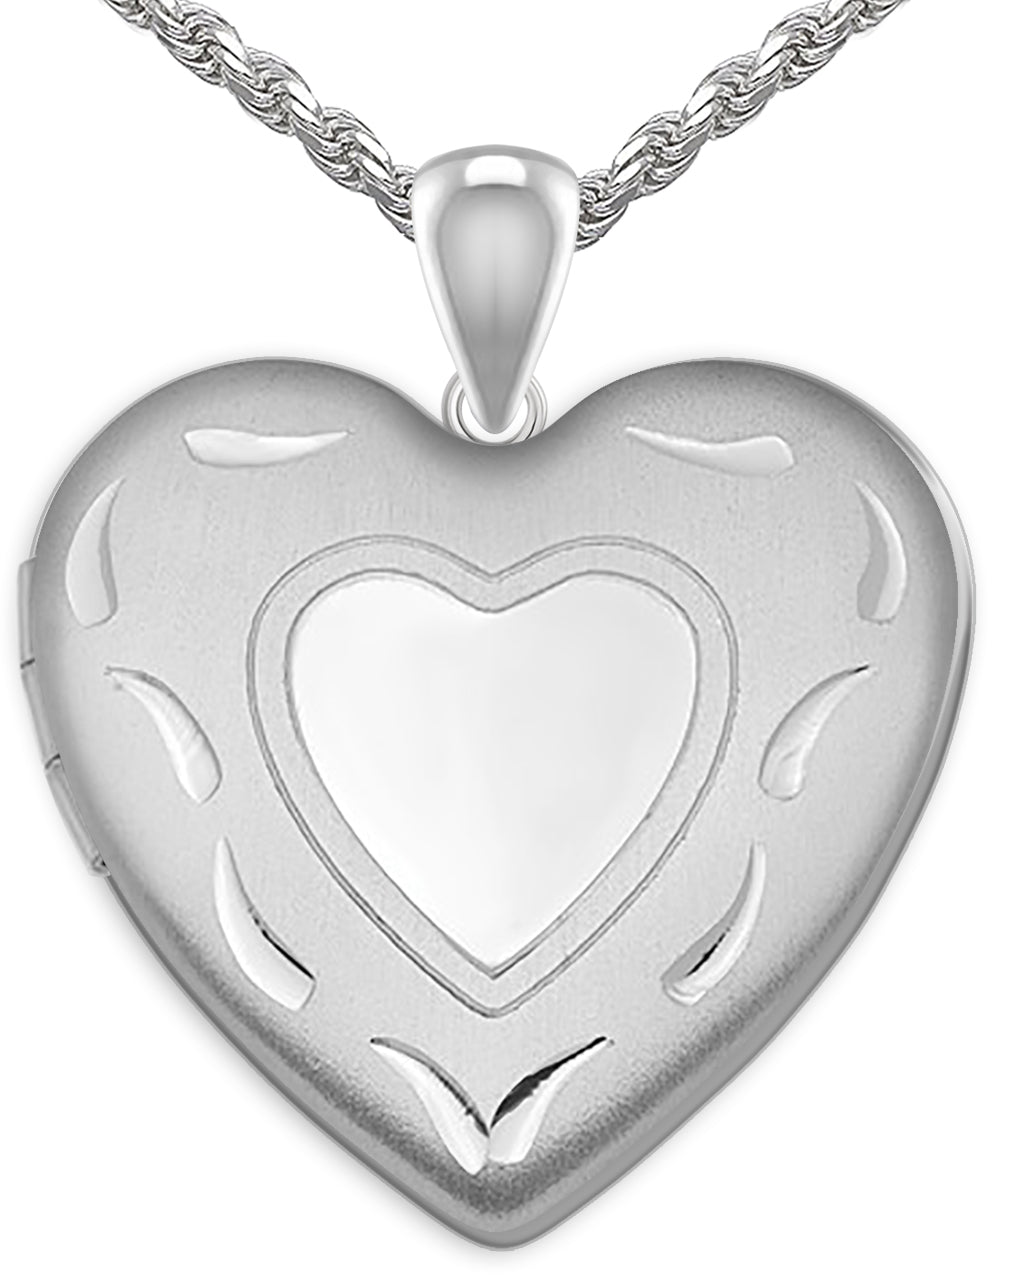 Heart Necklace - Silver Pendant With 2 Photo For Ladies